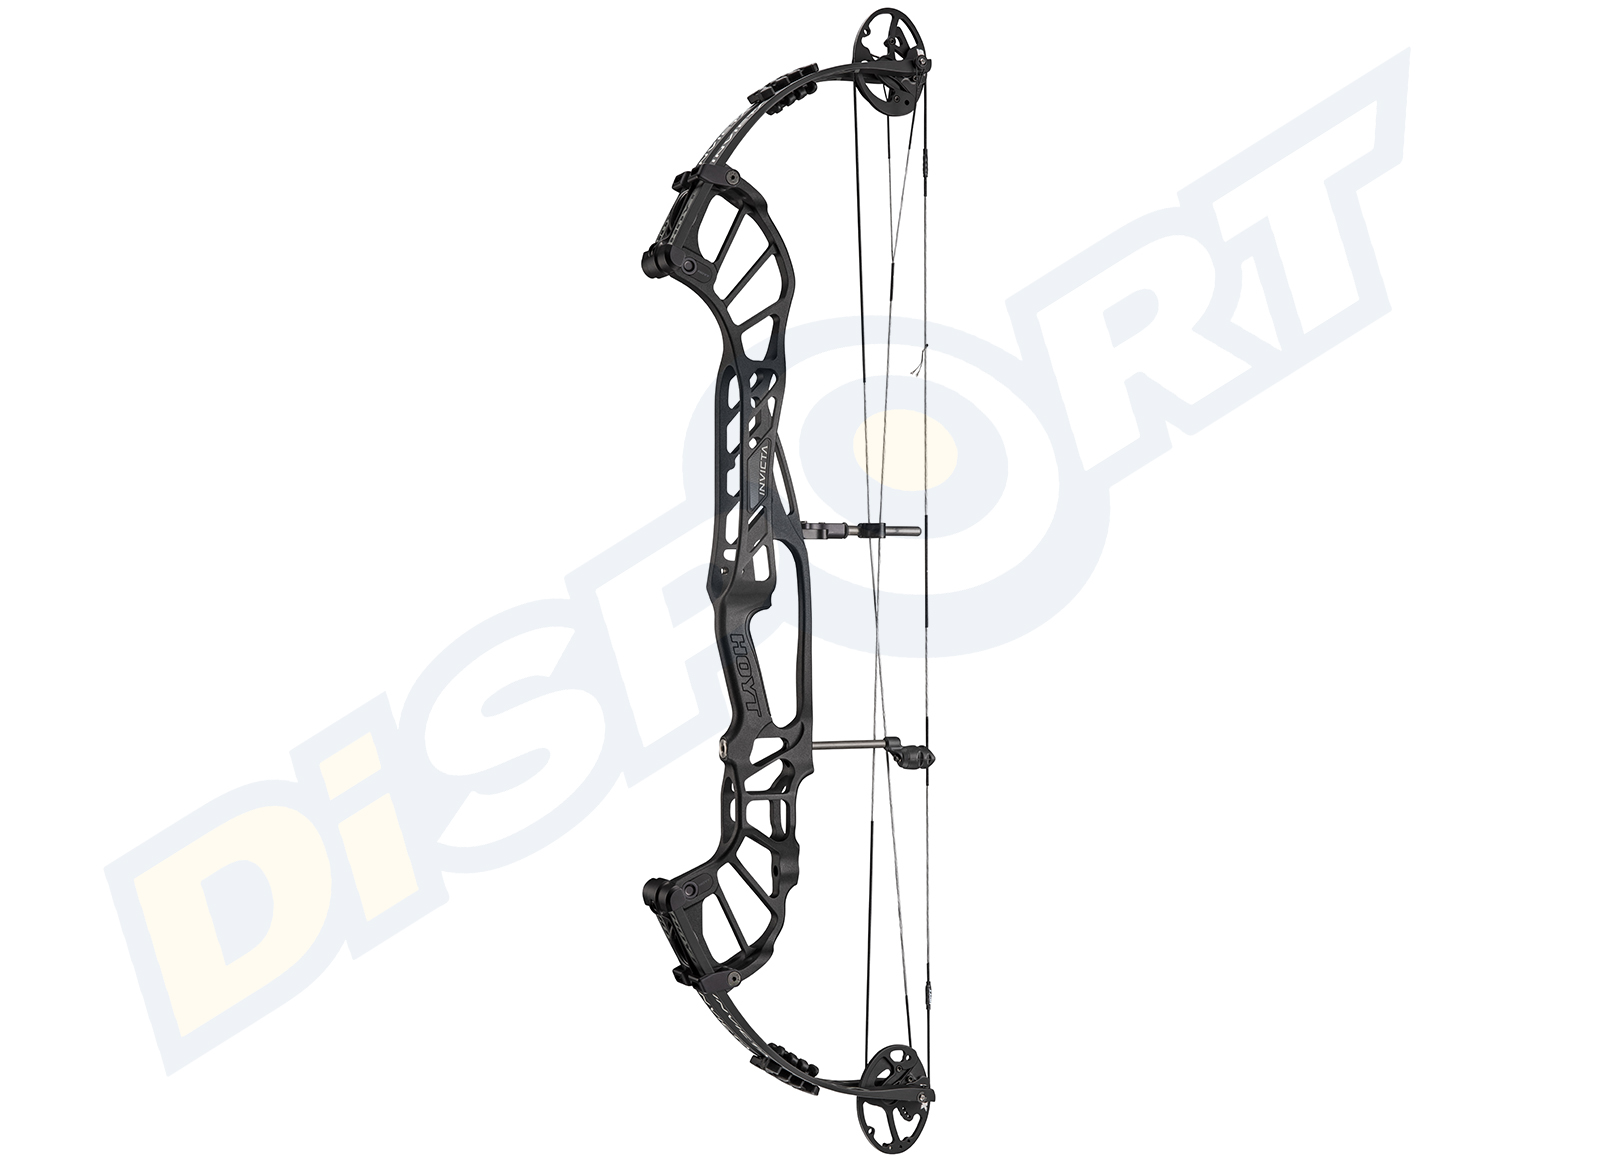 HOYT COMPOUND INVICTA 40 DCX 2020 BLACKOUT